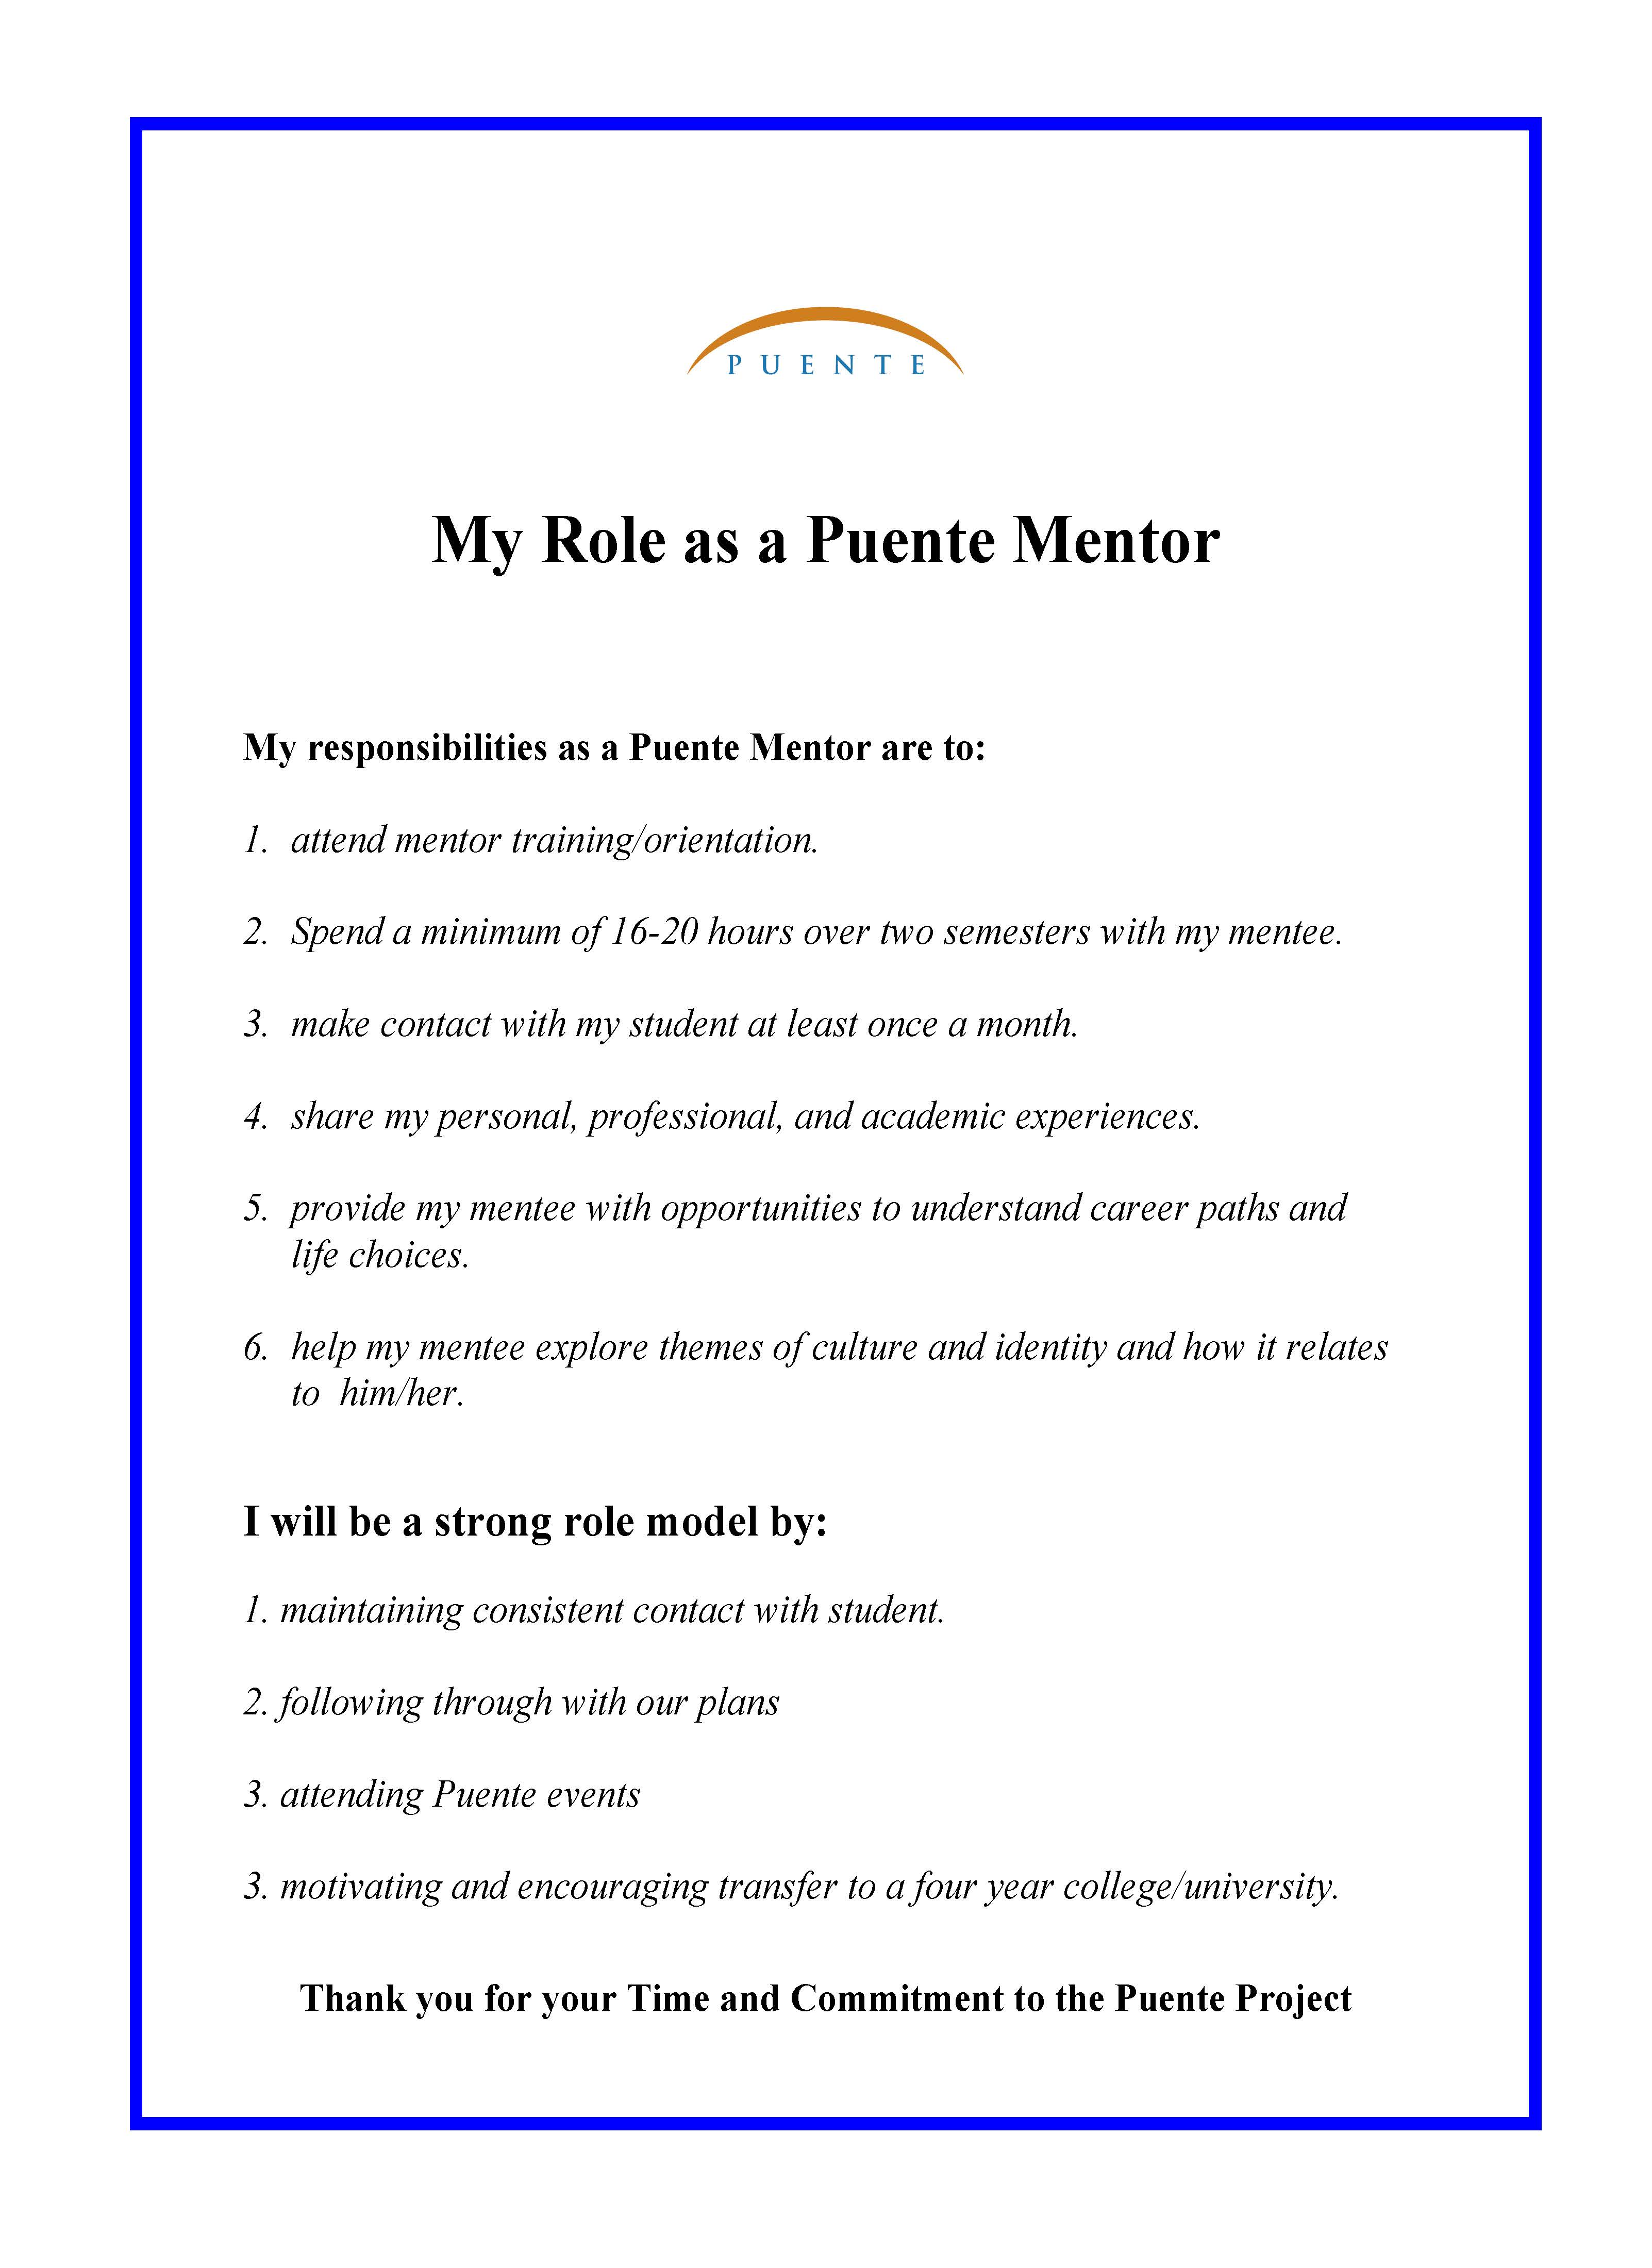 Mentor role